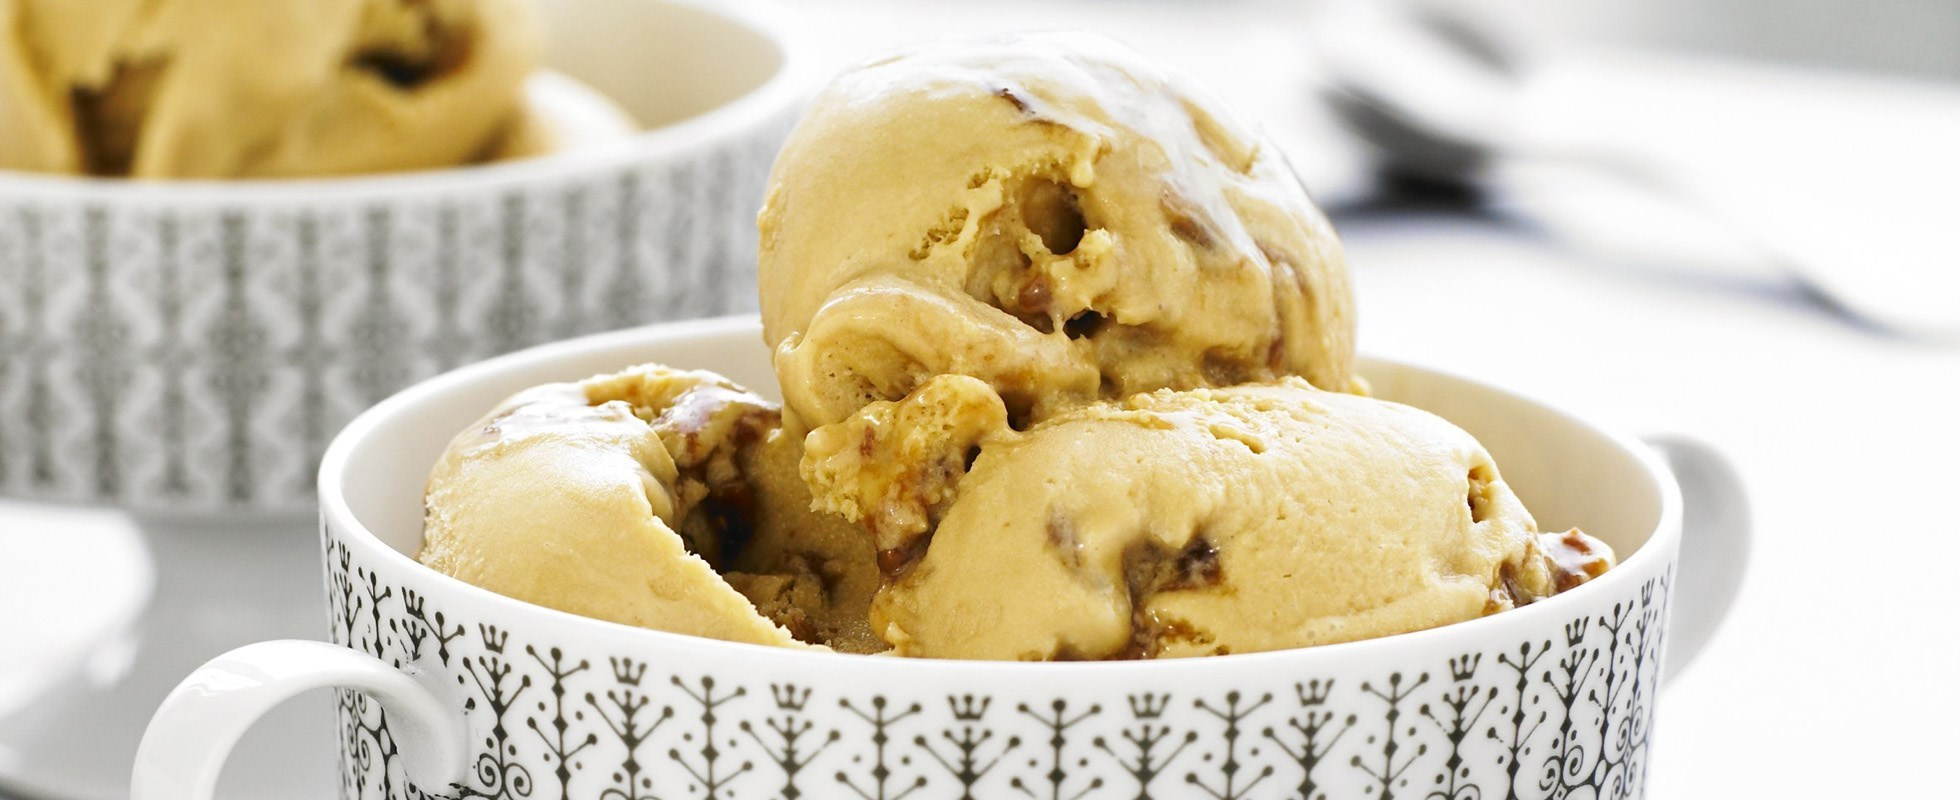 Peanut butter and salted caramel ice cream